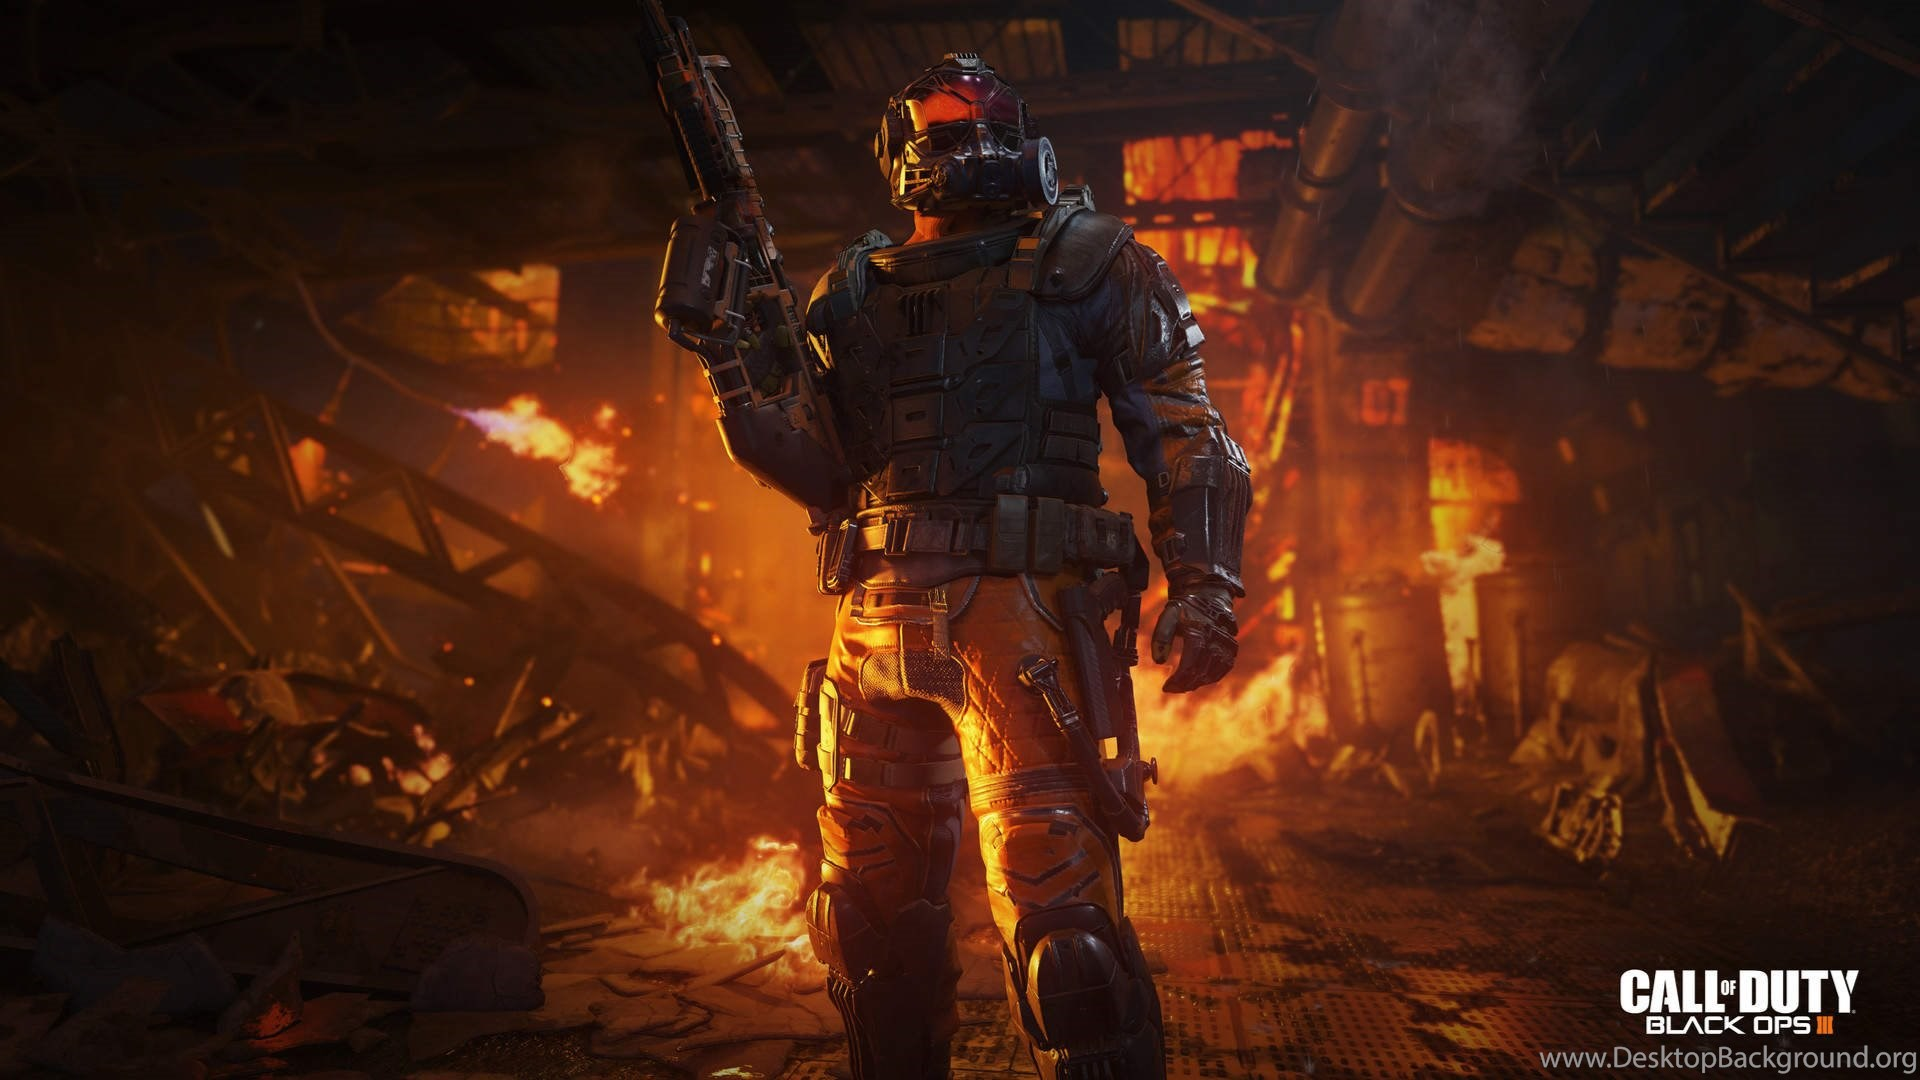 Call Of Duty Black Ops 3 Screenshot Cool Wallpapers Hd For Desktop Background